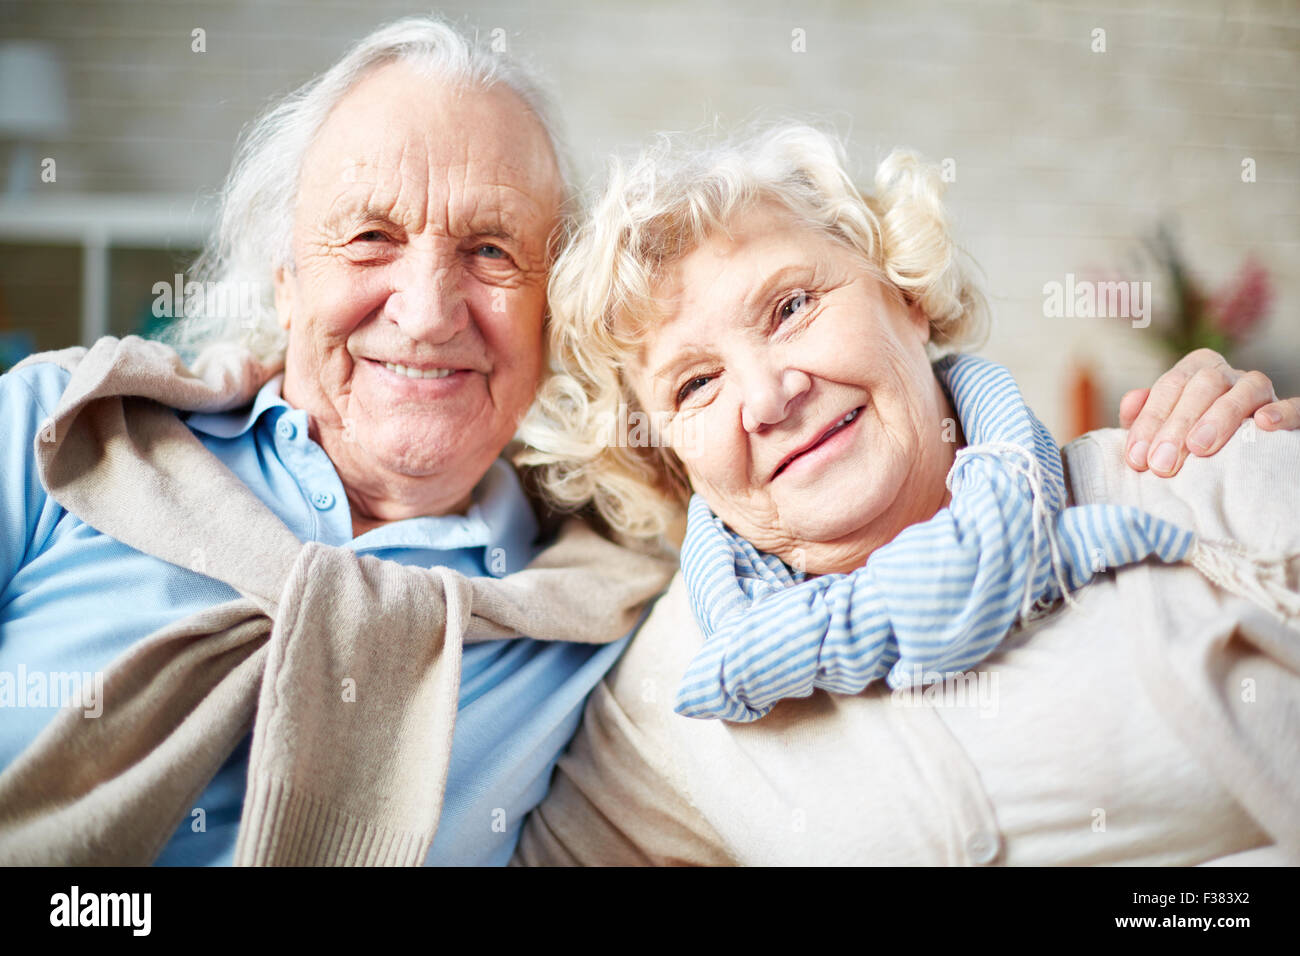 Affectionate elderly couple looking at camera with smiles - Stock Image